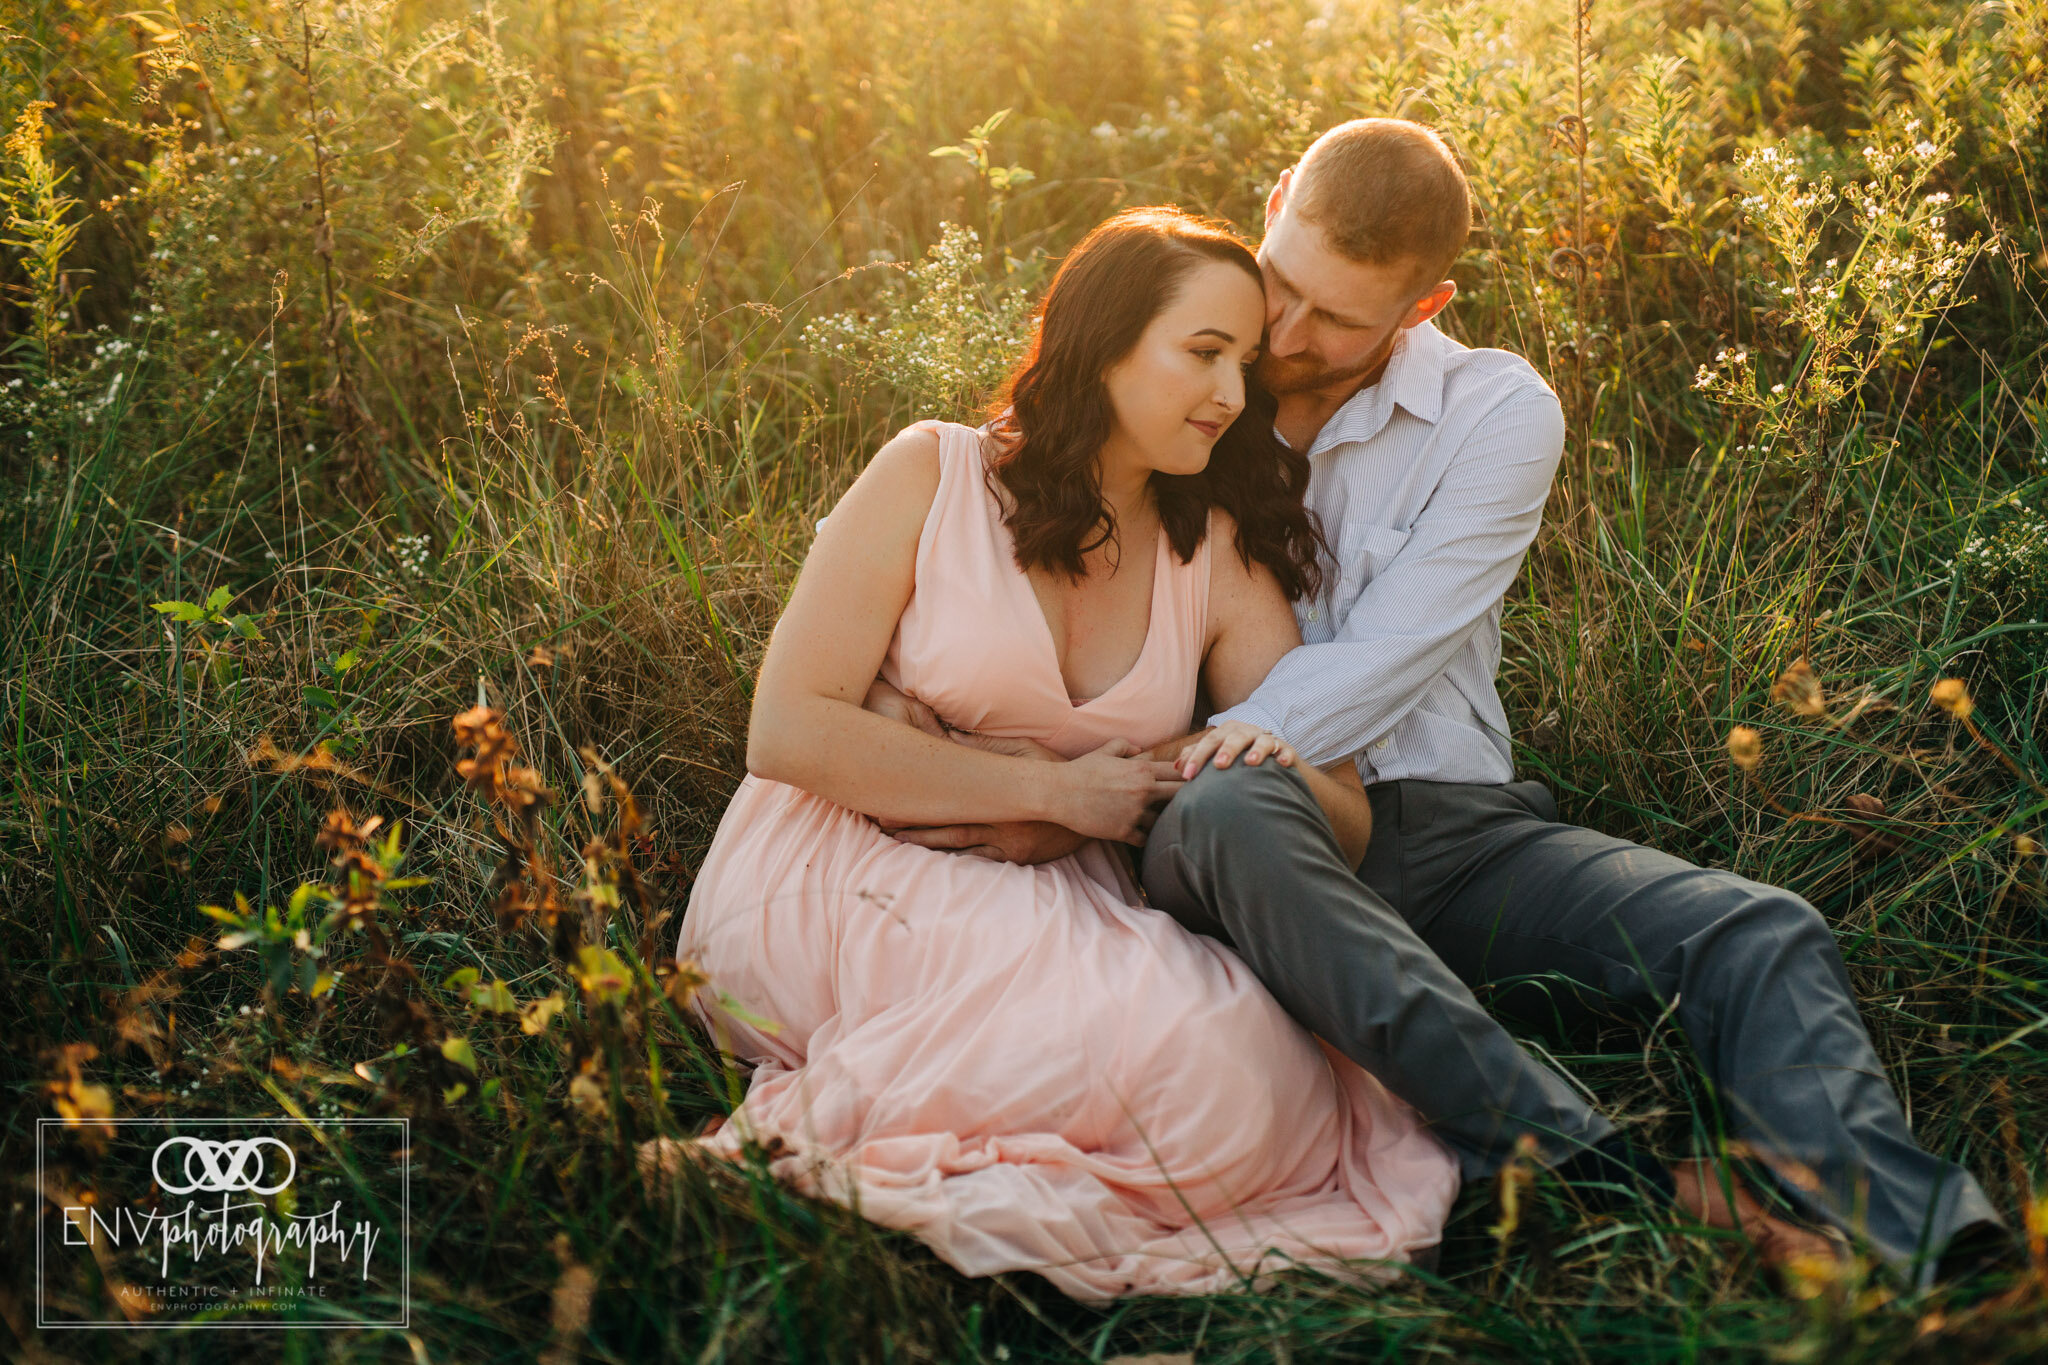 columbus ohio mount vernon ohio engagement photographer (3).jpg